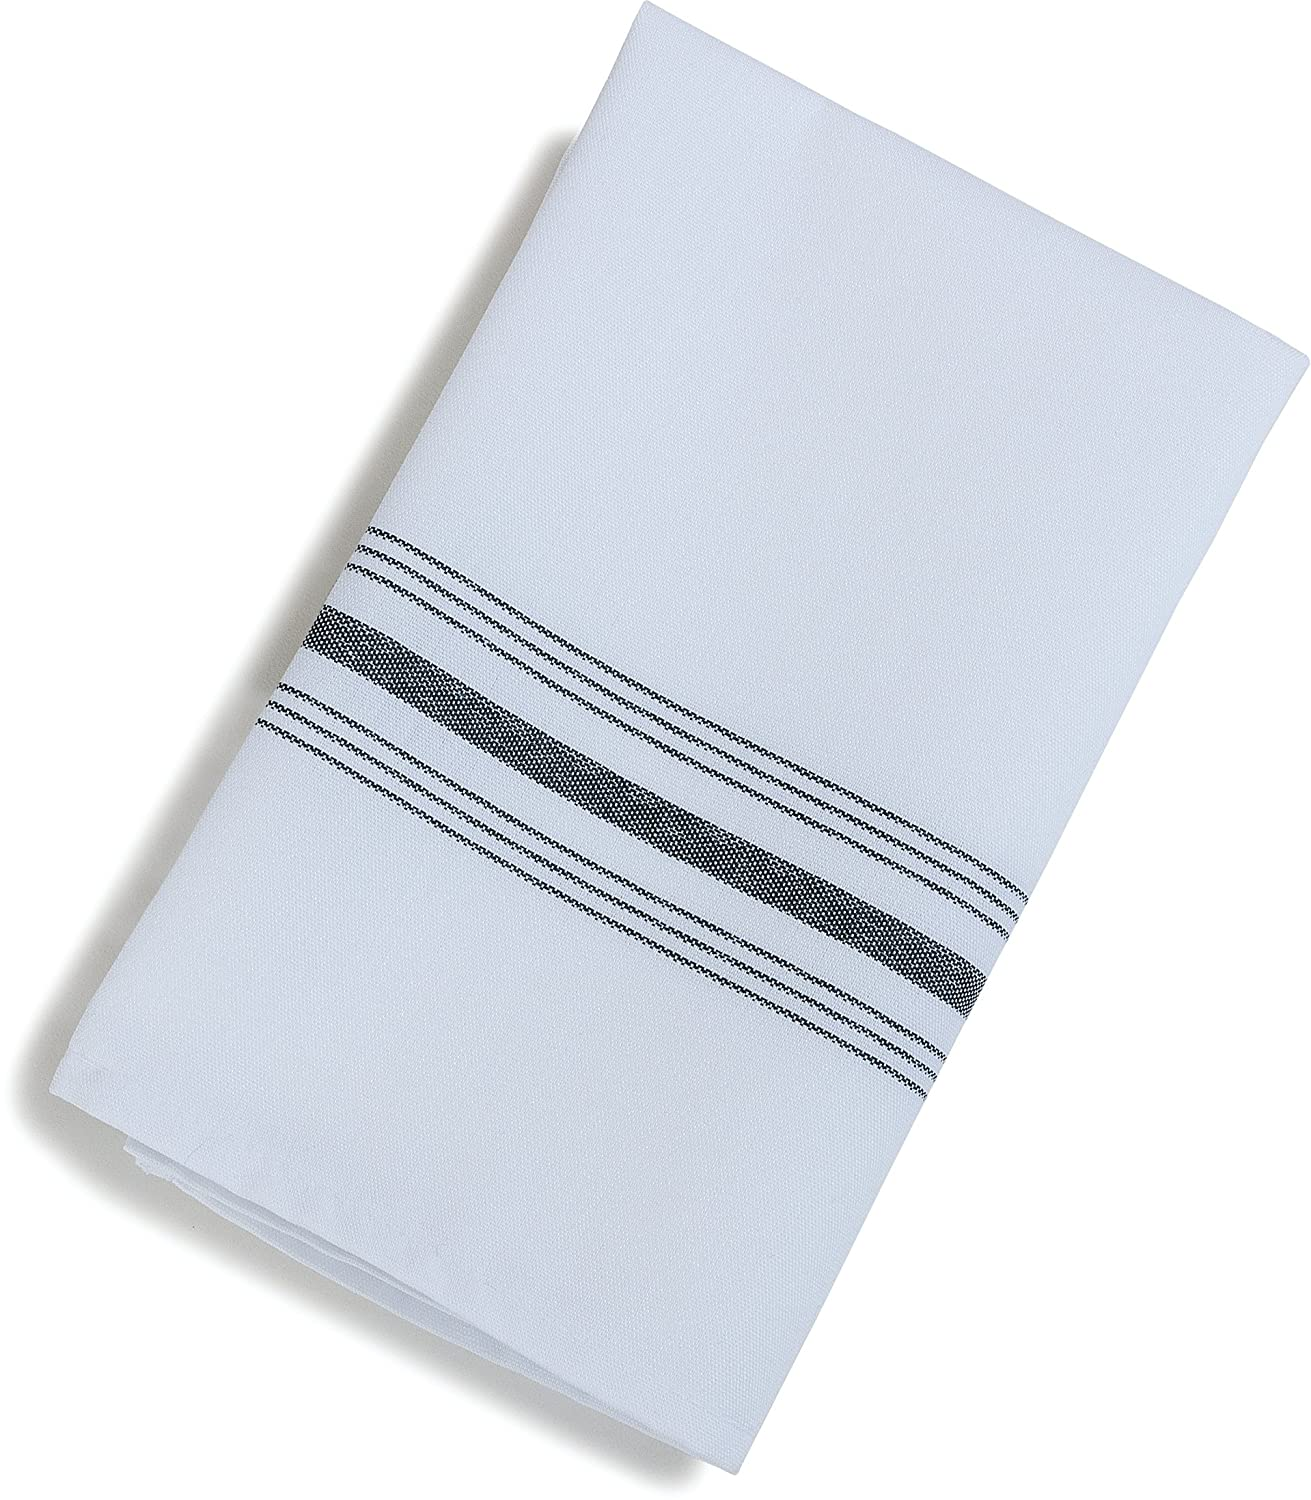 Carlisle 53771822NH052 Restaurant Quality Cloth Dinner/Bistro Napkins, 18-Inchx22-Inch, Purple Stripe, 12-Pack